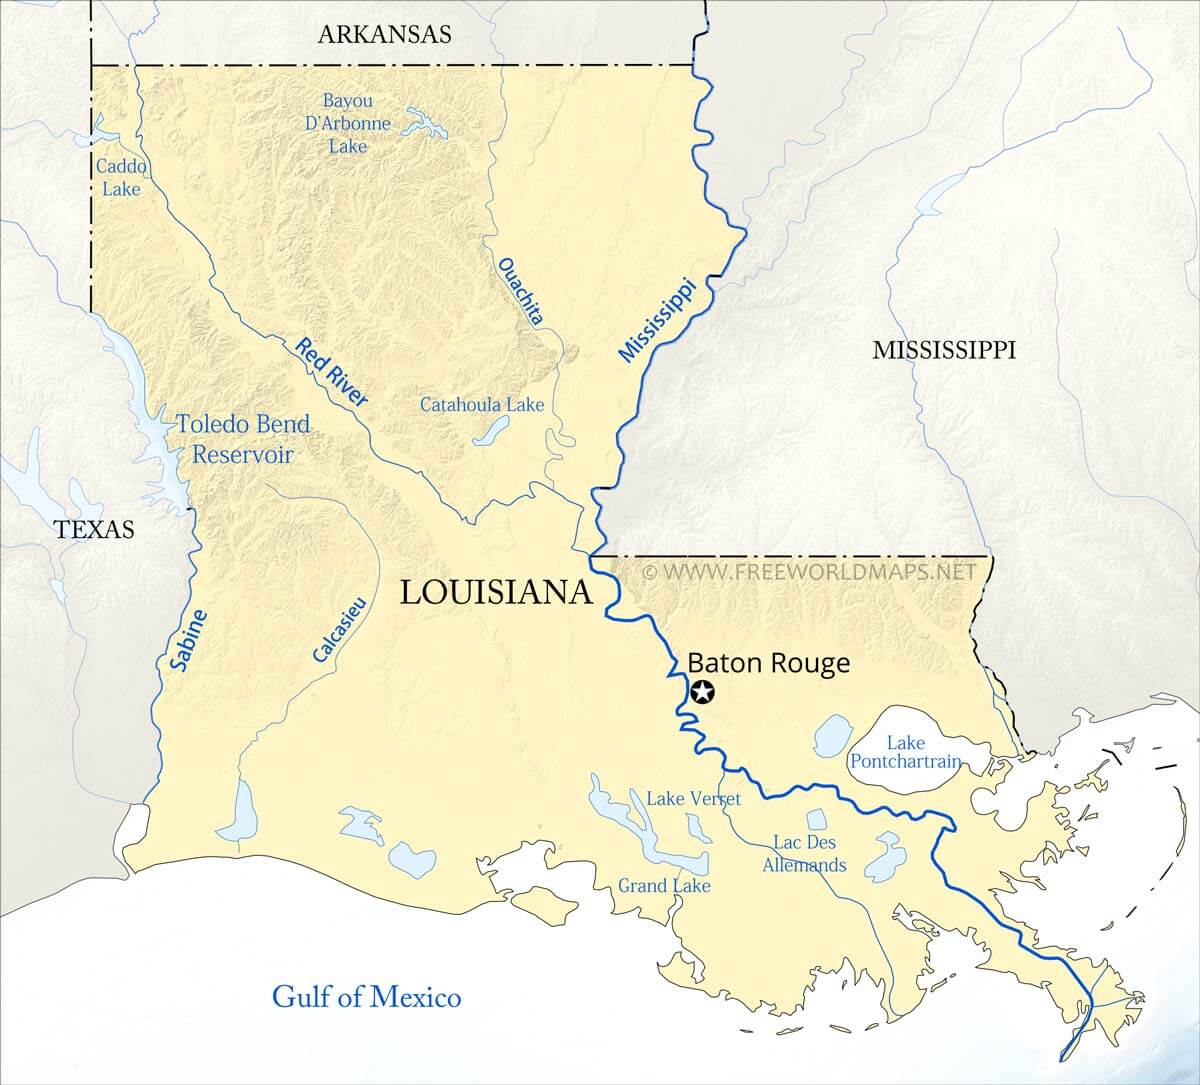 rivers of louisiana map Physical Map Of Louisiana rivers of louisiana map